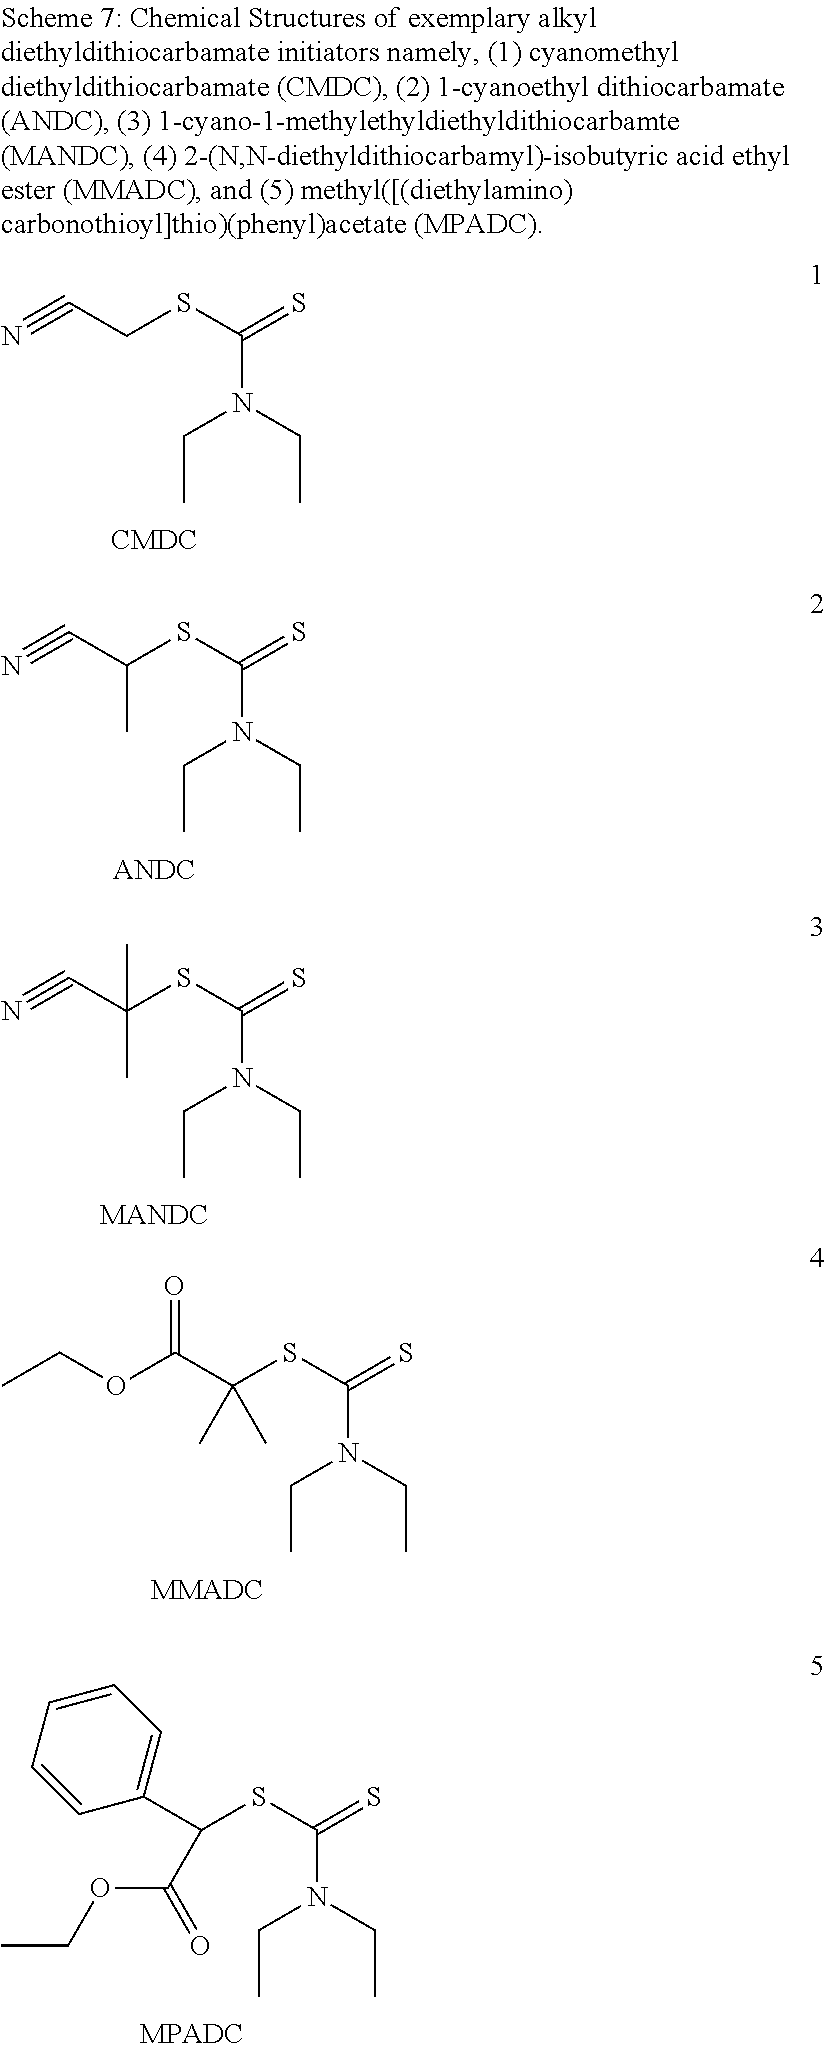 cuh mediated hydroamination of styrene Excellent yields and enantioselectivities since then, cuh-catalyzed hydroamination has been extended to a wide scope of substrate classes, including vinyl silanes, terminal alkenes, internal unactivated alkenes, alkynes, and strained cyclic alkenes7,8 a general catalytic cycle for the hydroamination of styrene is shown in scheme 1.